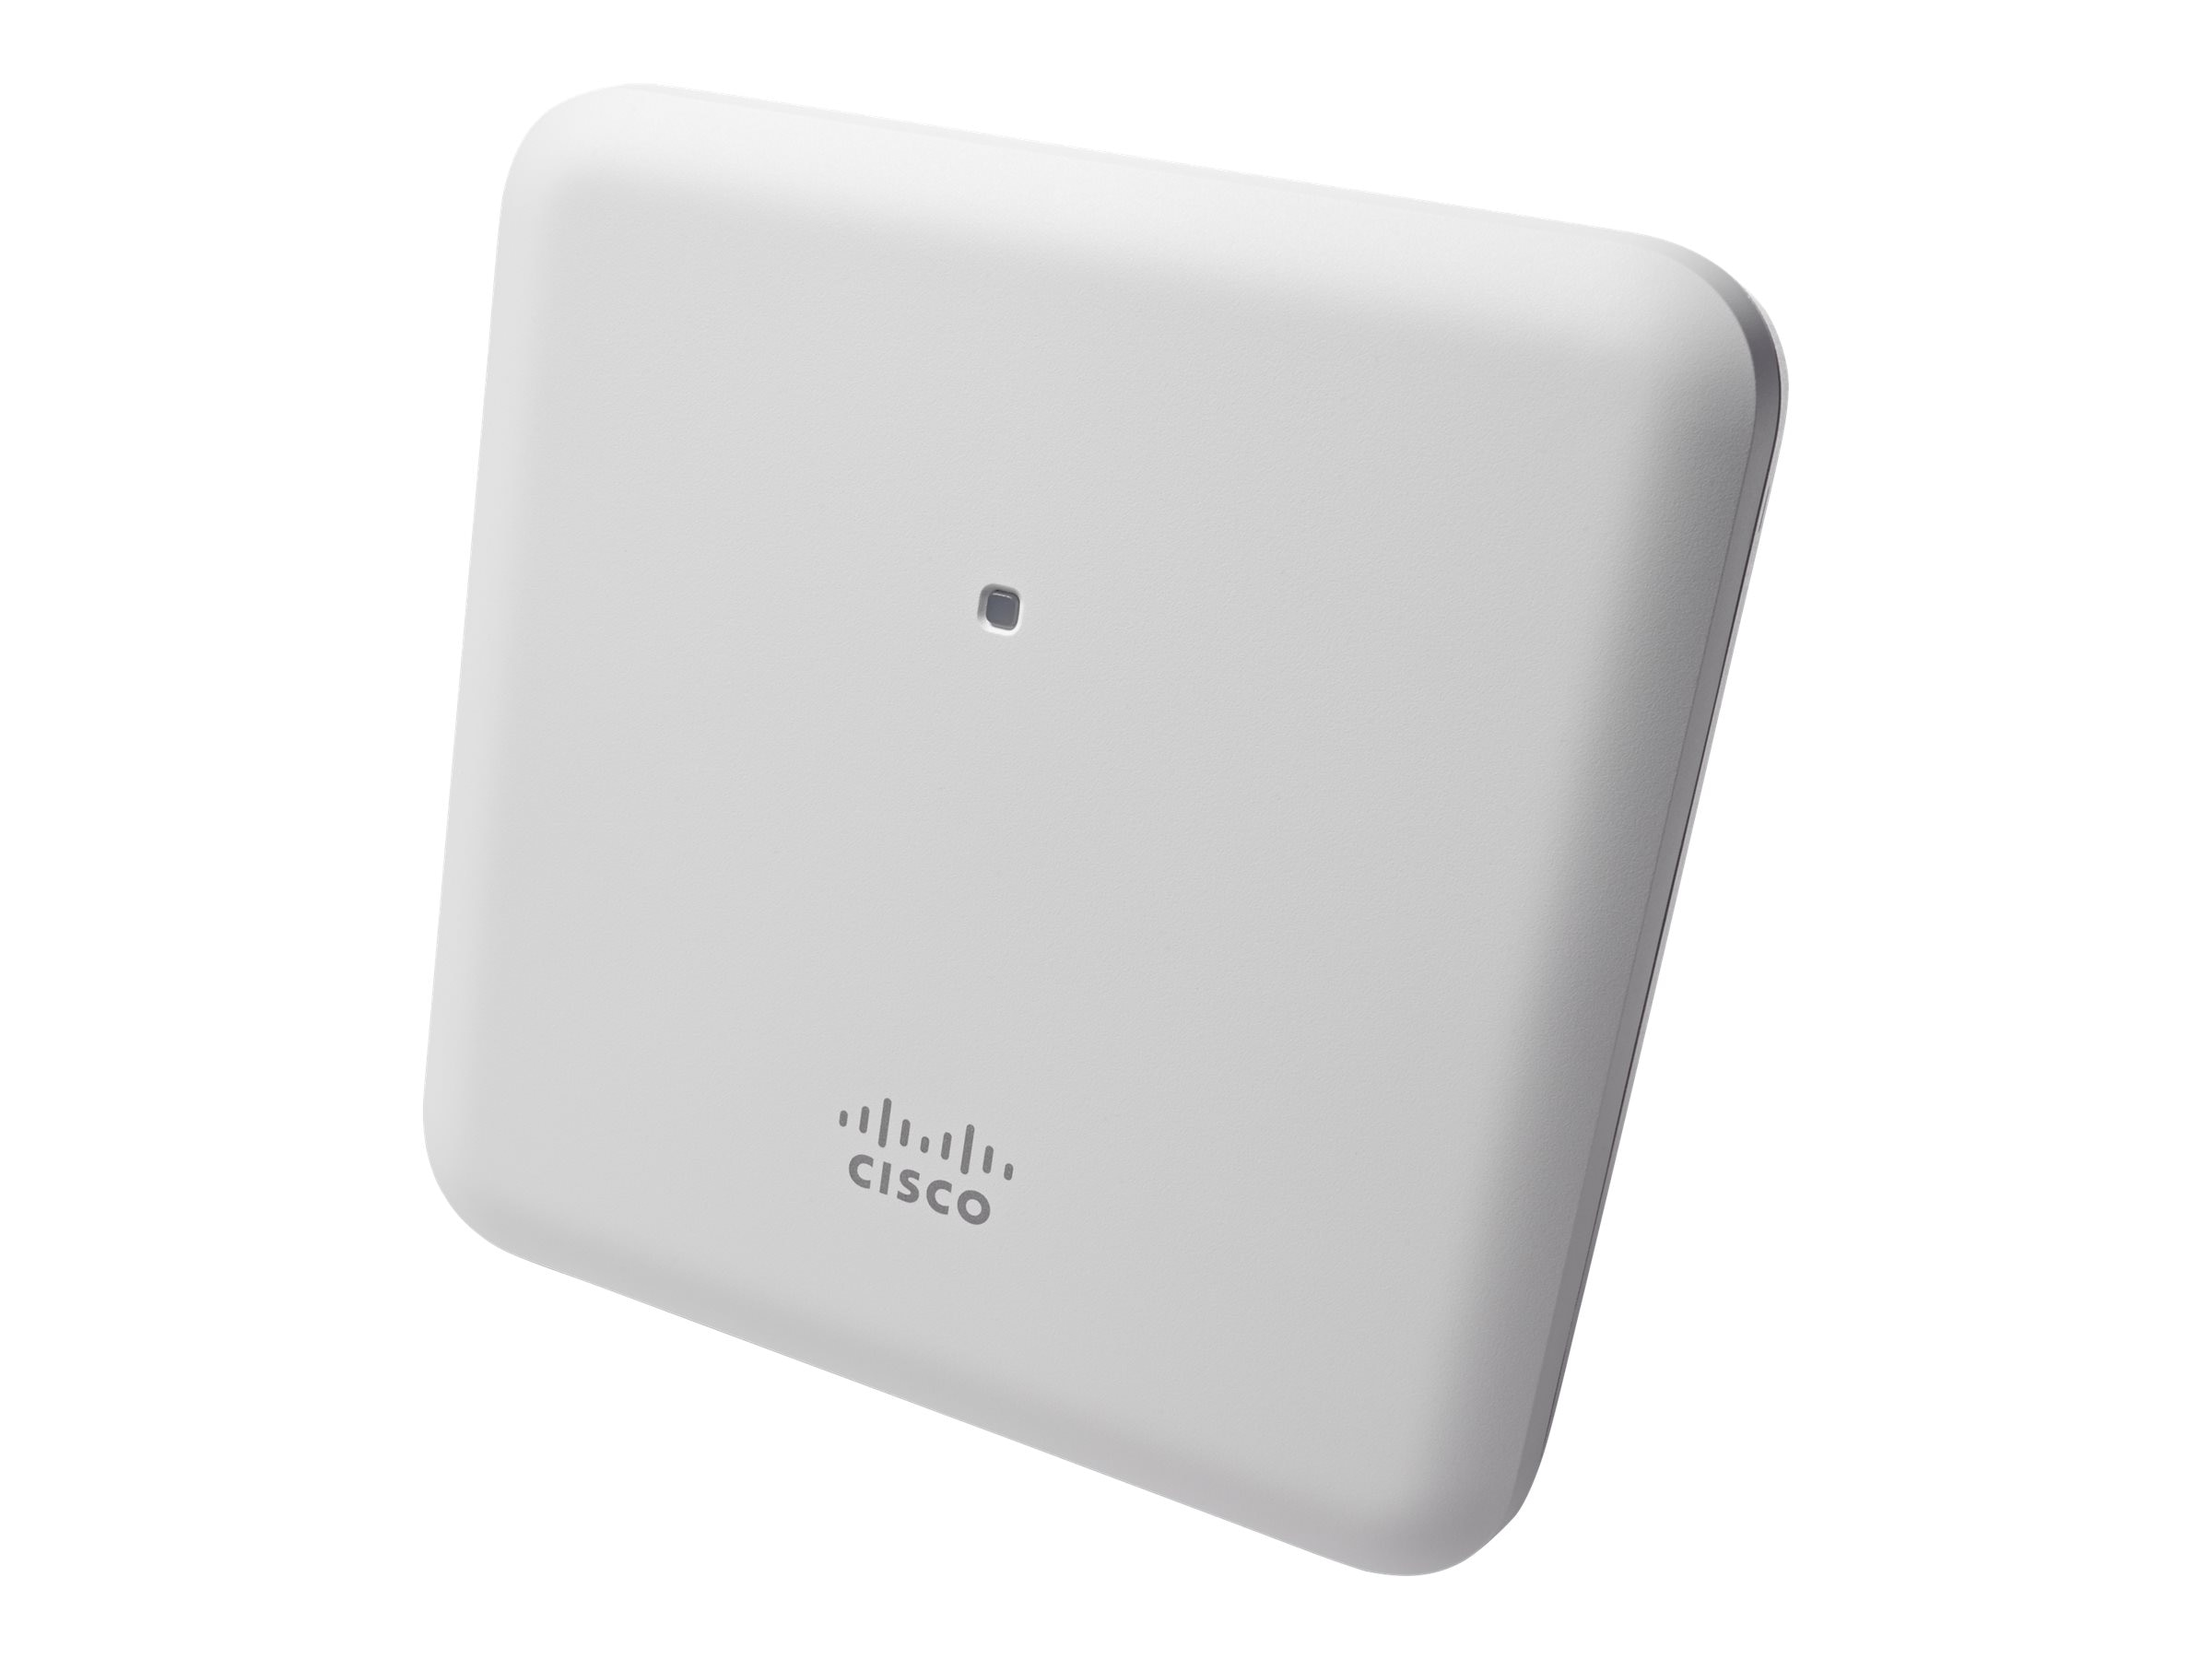 Cisco Aironet 1851i AP w 4x4:4SS, Int Ant, S Domain Configurable, AIR-AP1852I-S-K9C